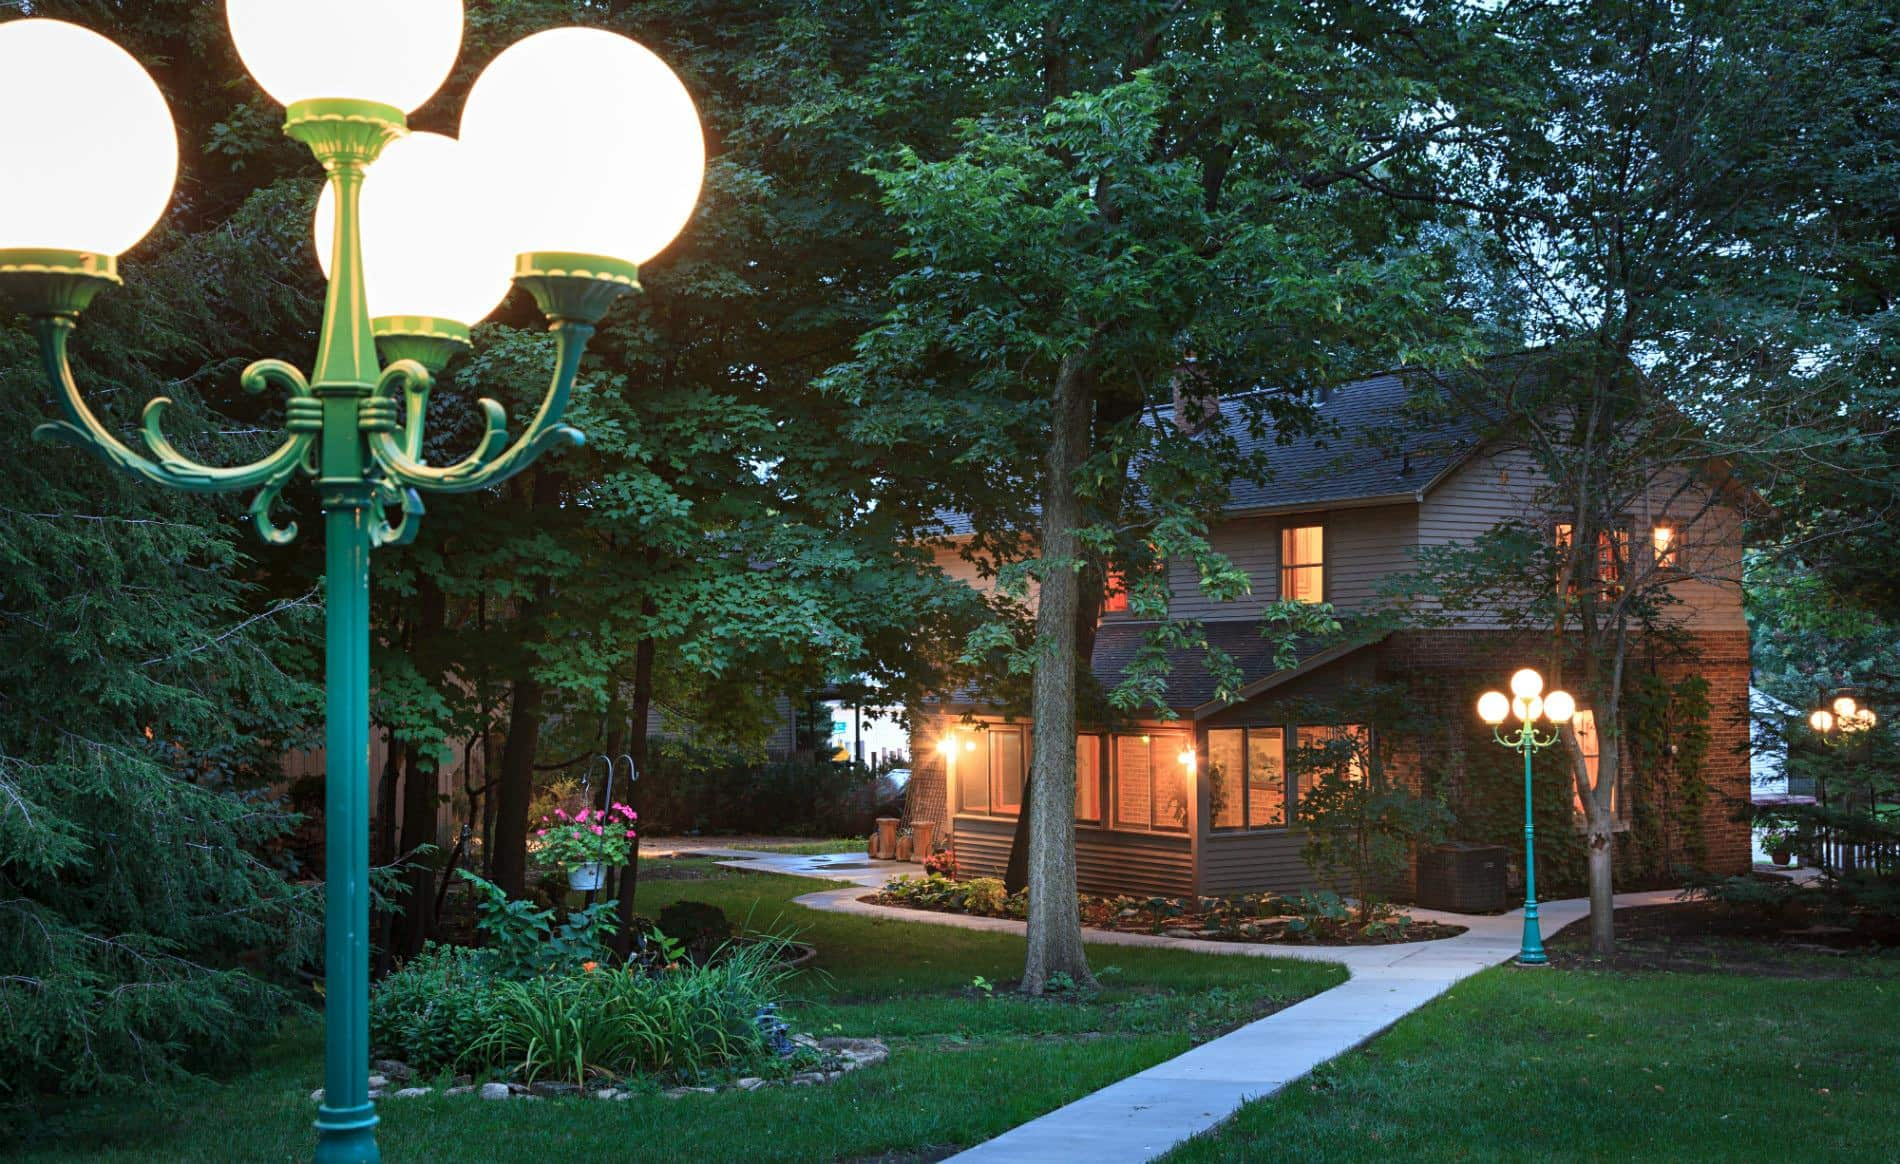 Exterior view of backyard at dusk with a sidewalk, green grass, a green light post and several trees